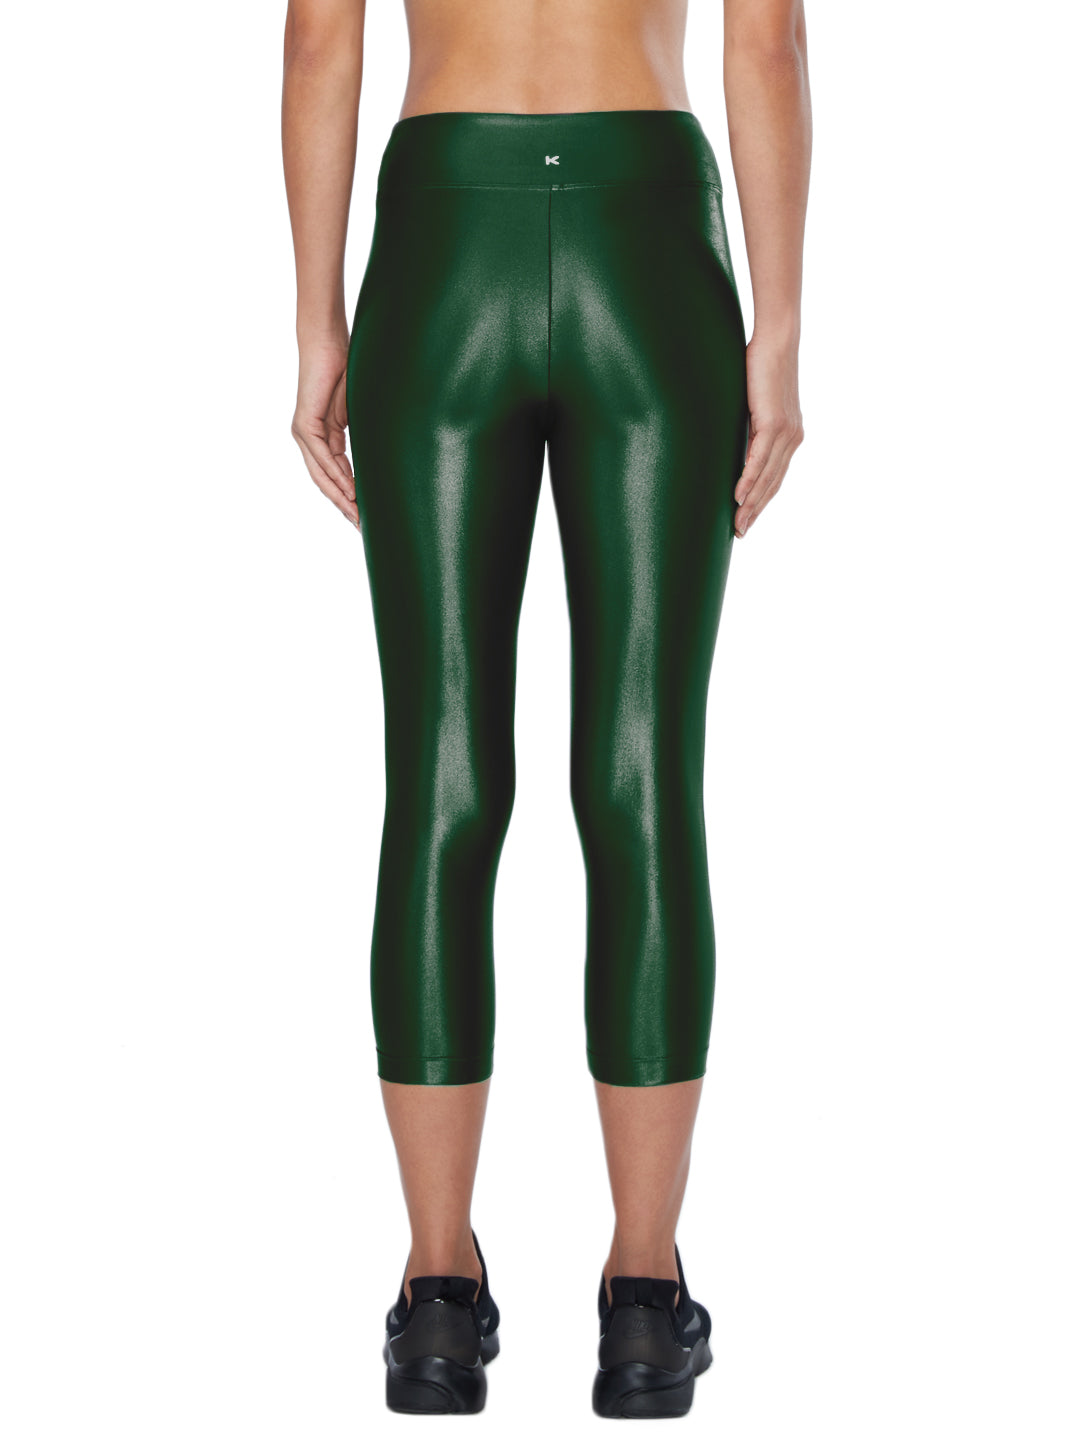 Lustrous High Rise Capri Legging - Hunter Green